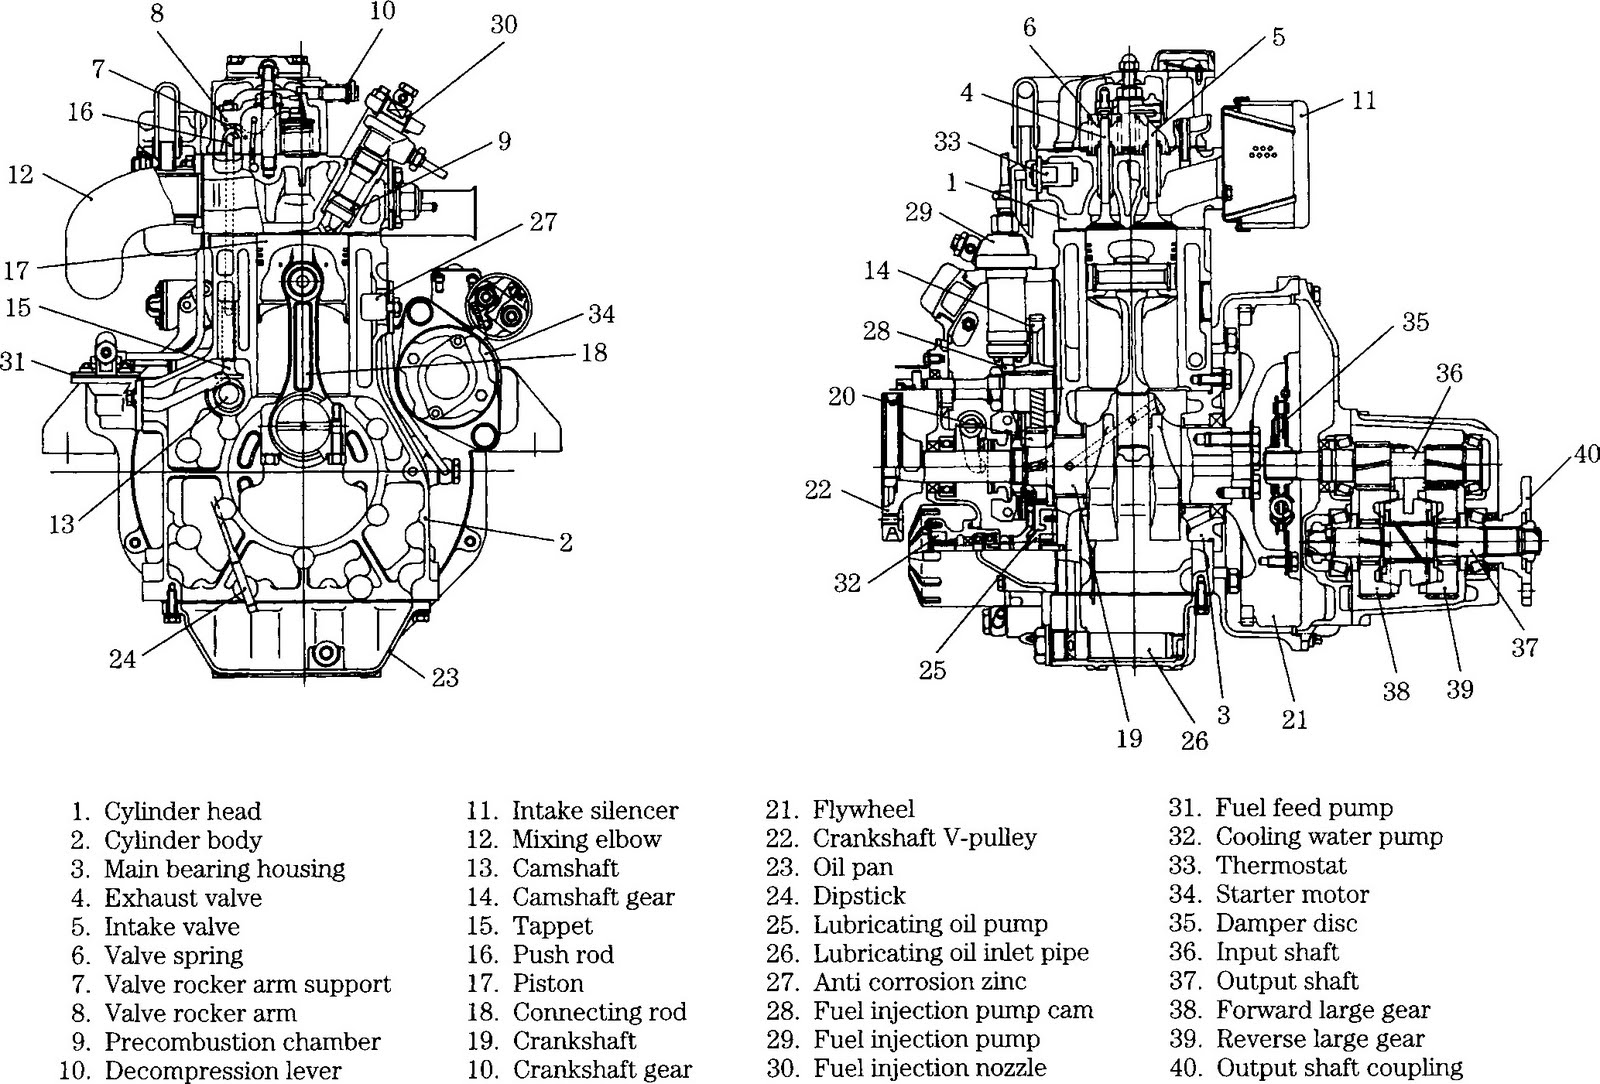 Troubleshooting And Repairingsel Engines April